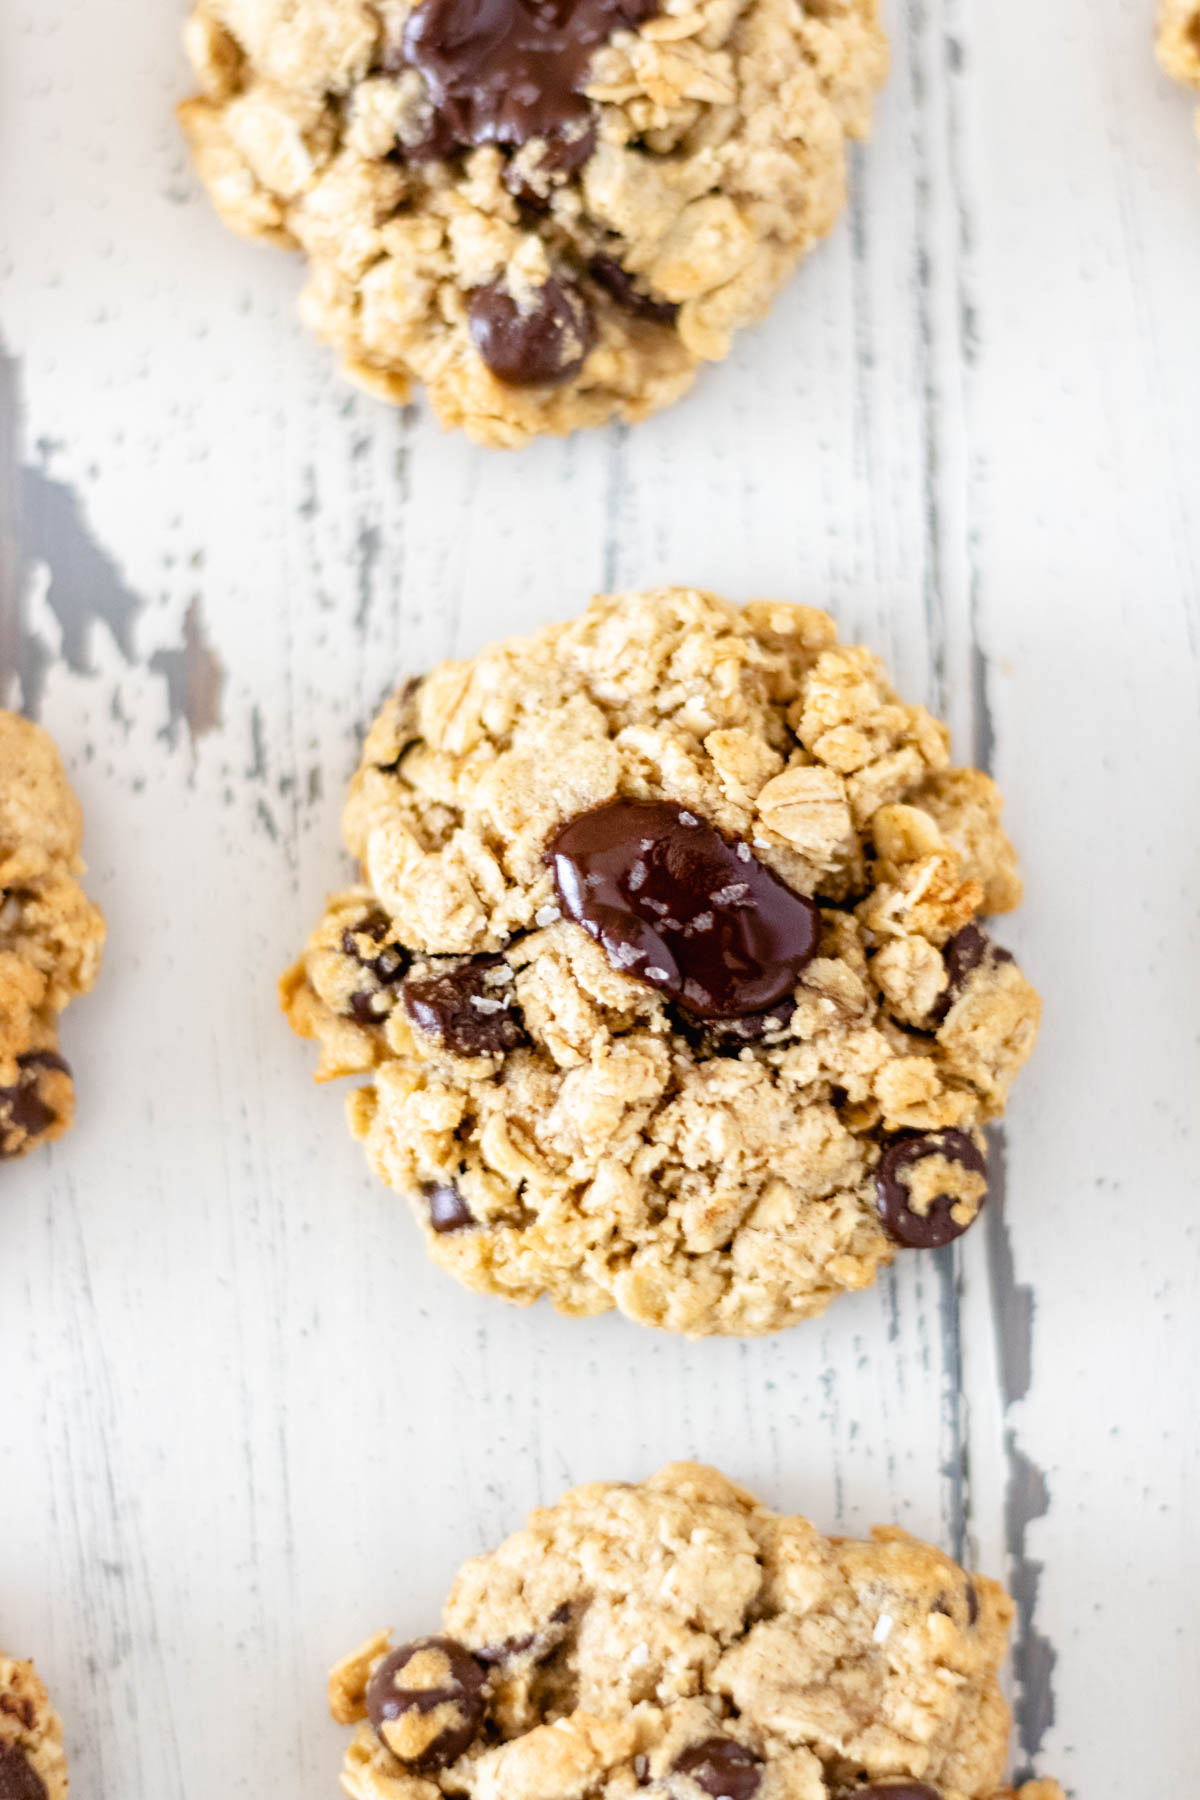 Three soft and chewy Dark-Chocolate Chip Oatmeal Cookies in a row.